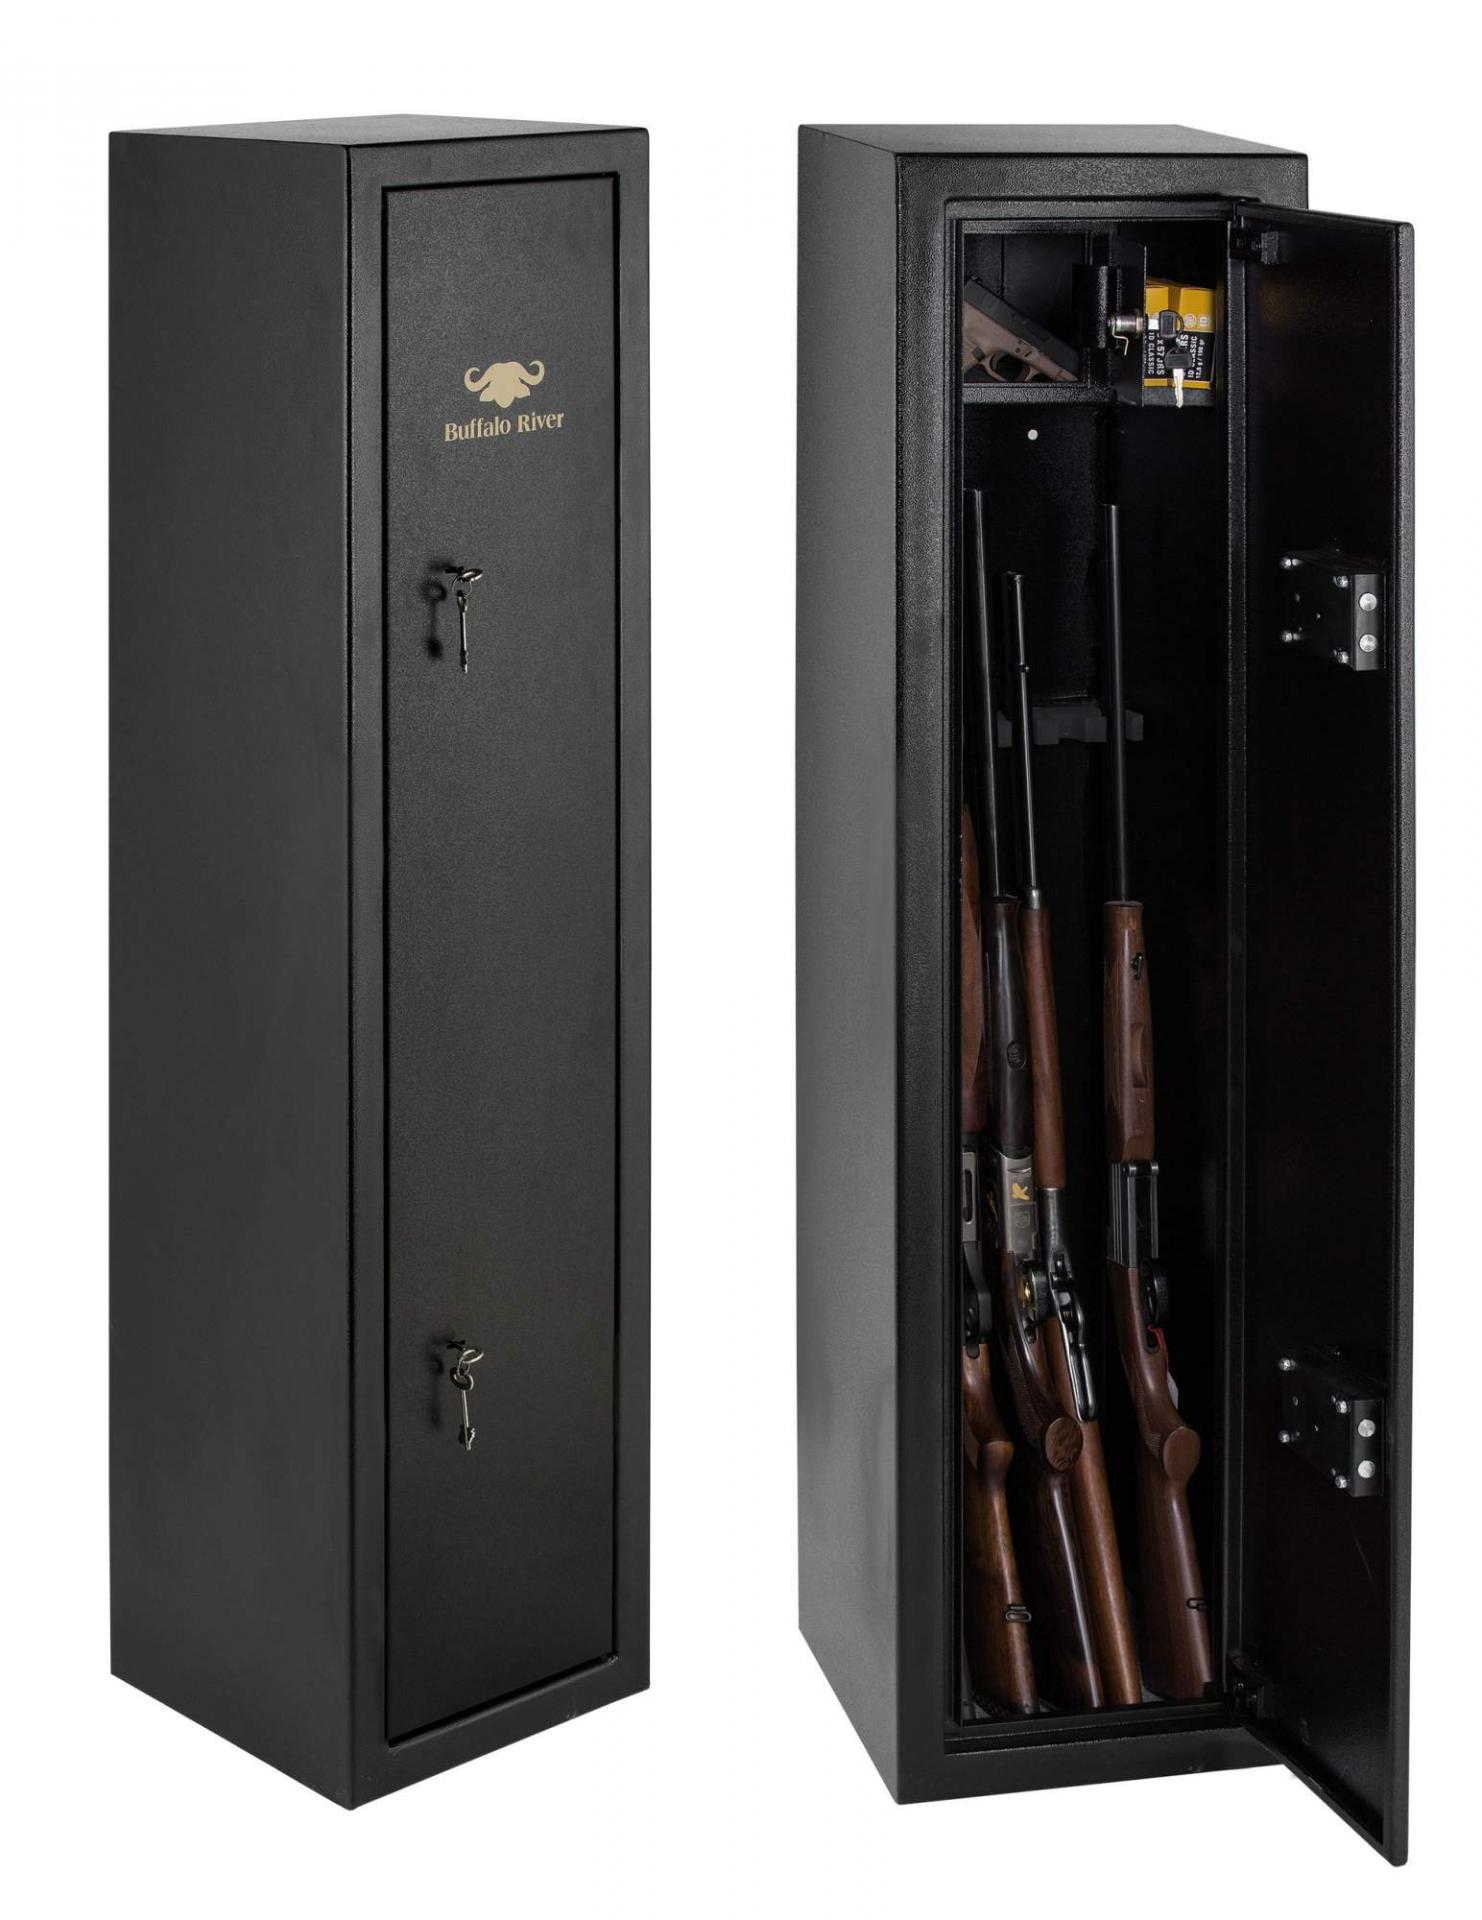 coffre fort pour fusil 28 images coffre fort pour 7 armes de chasse et tir buffalo river. Black Bedroom Furniture Sets. Home Design Ideas